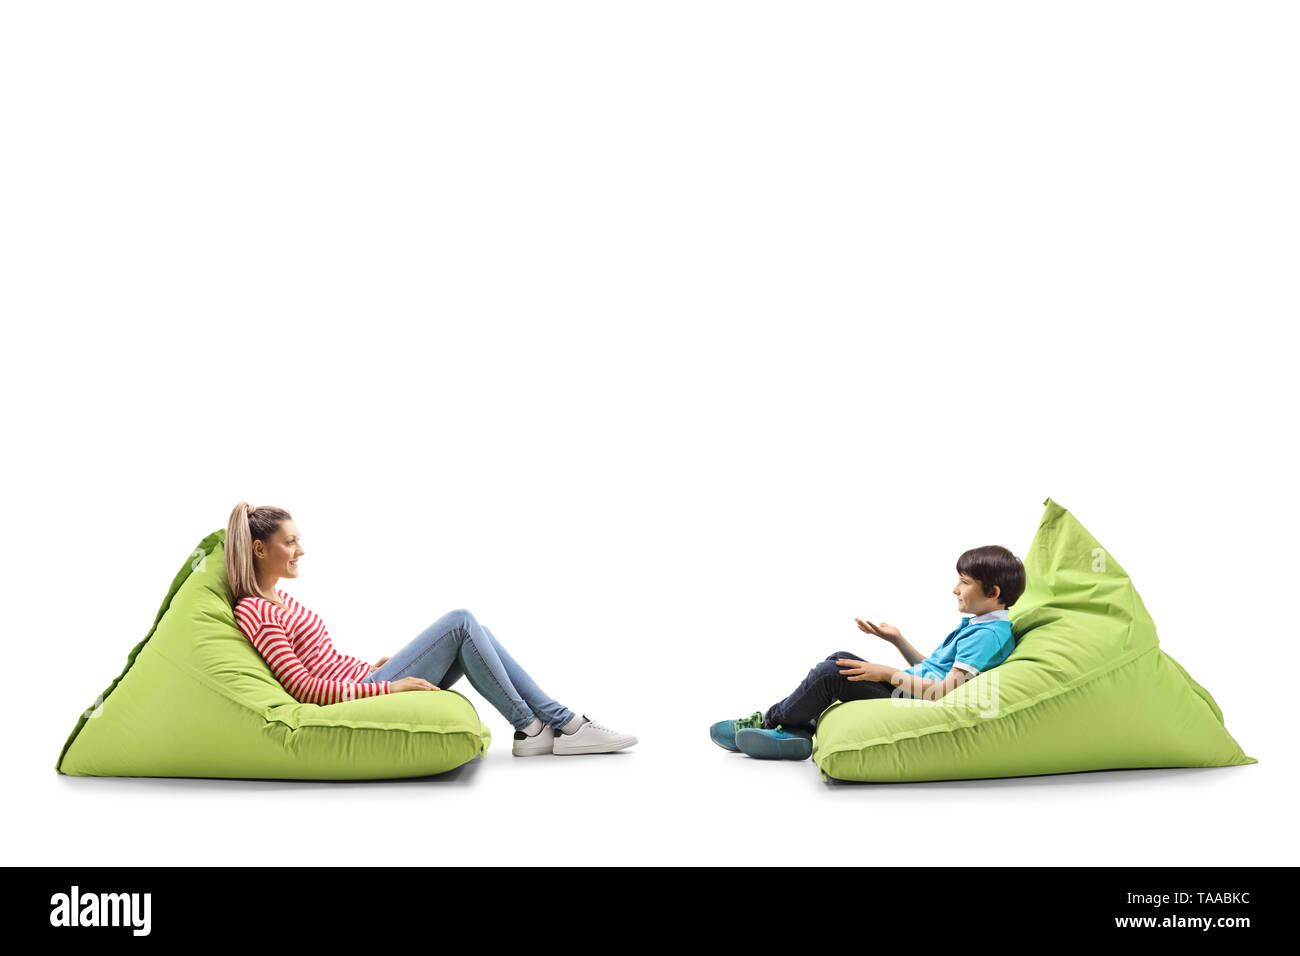 Full length profile shot of a mother and son sitting on bean bags and talking isolated on white background - Stock Image